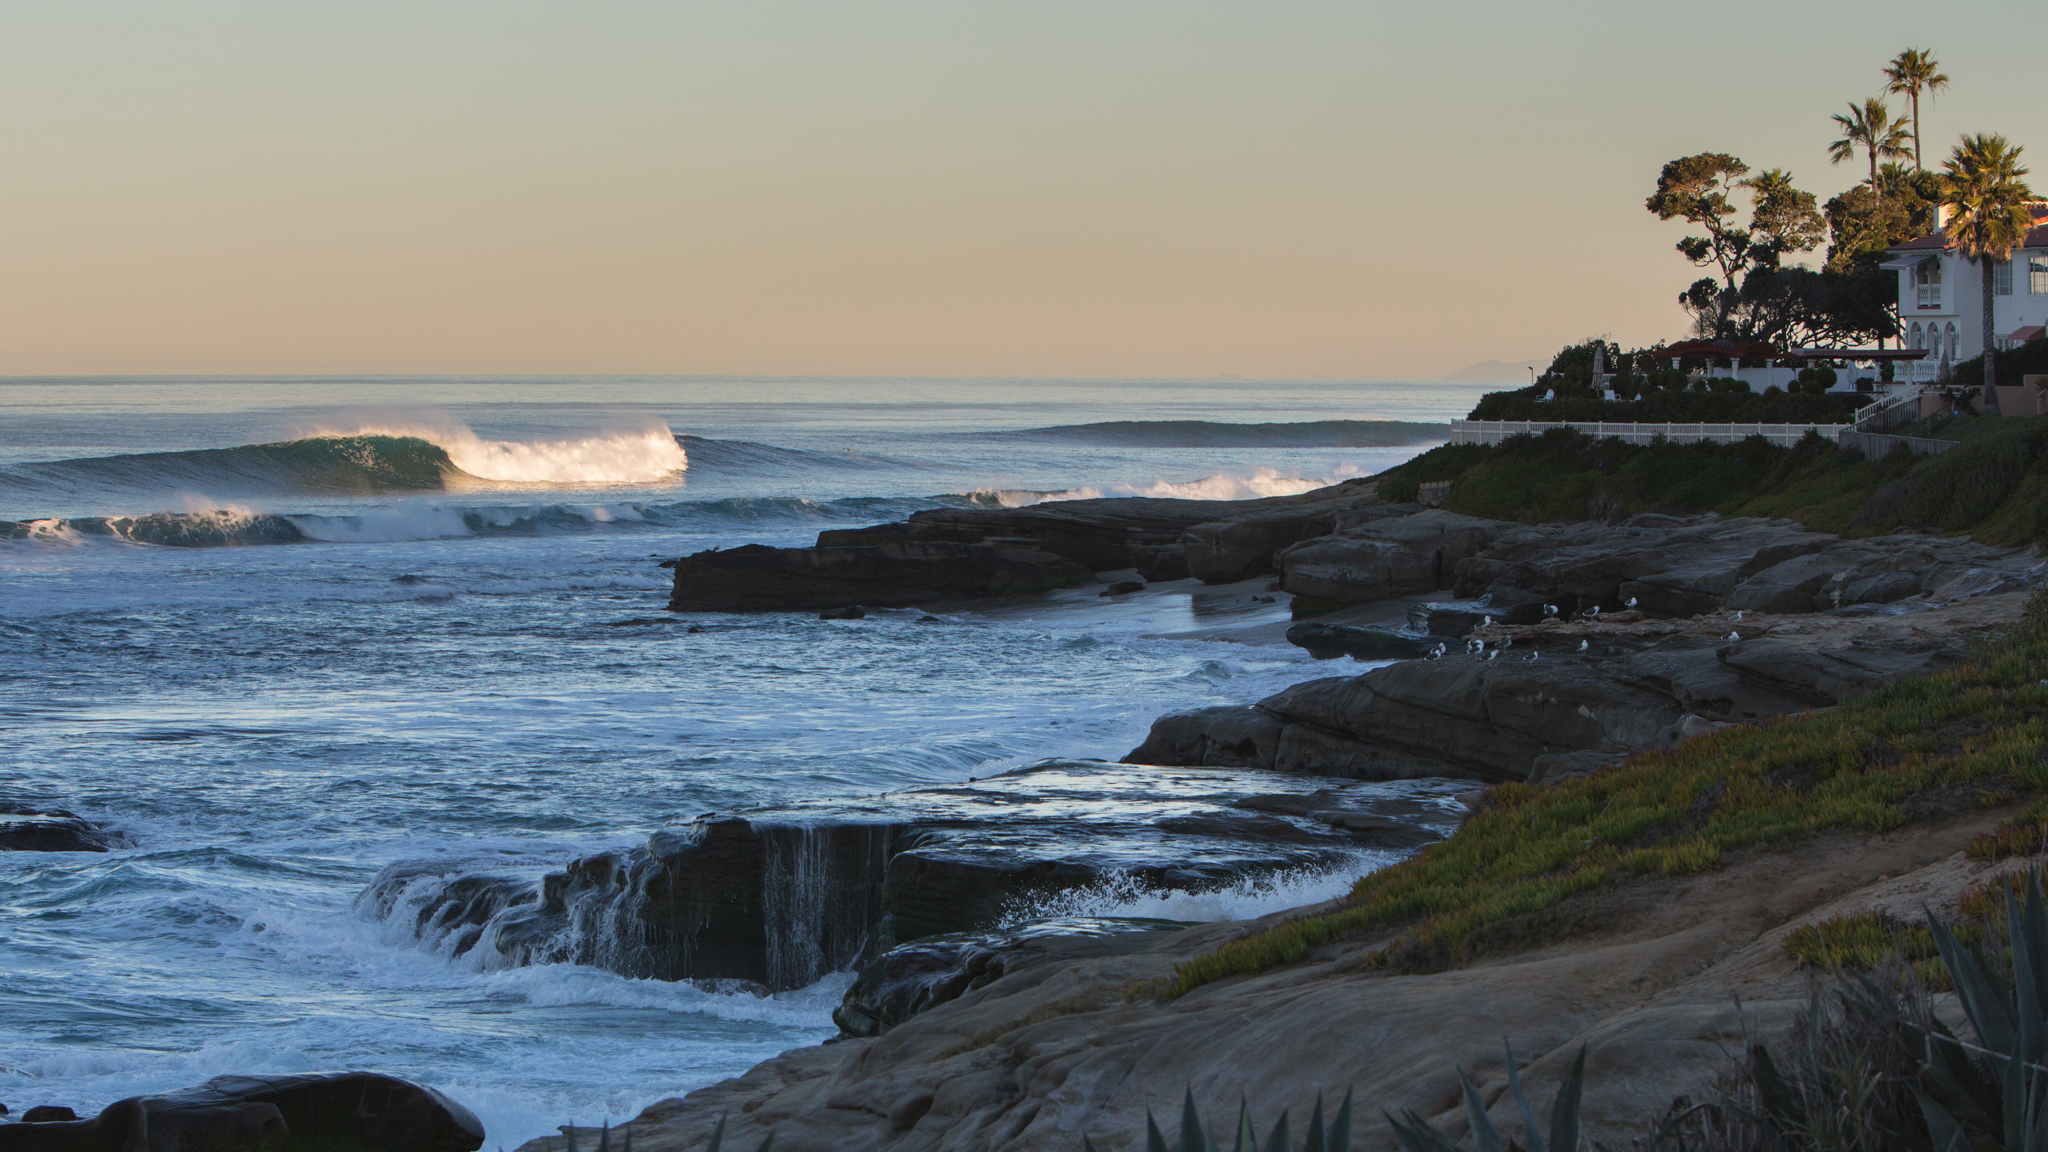 A stone's throw from Mitt Romney's California digs, La Jolla's reefs are a haven for San Diego surfers in the wintertime.